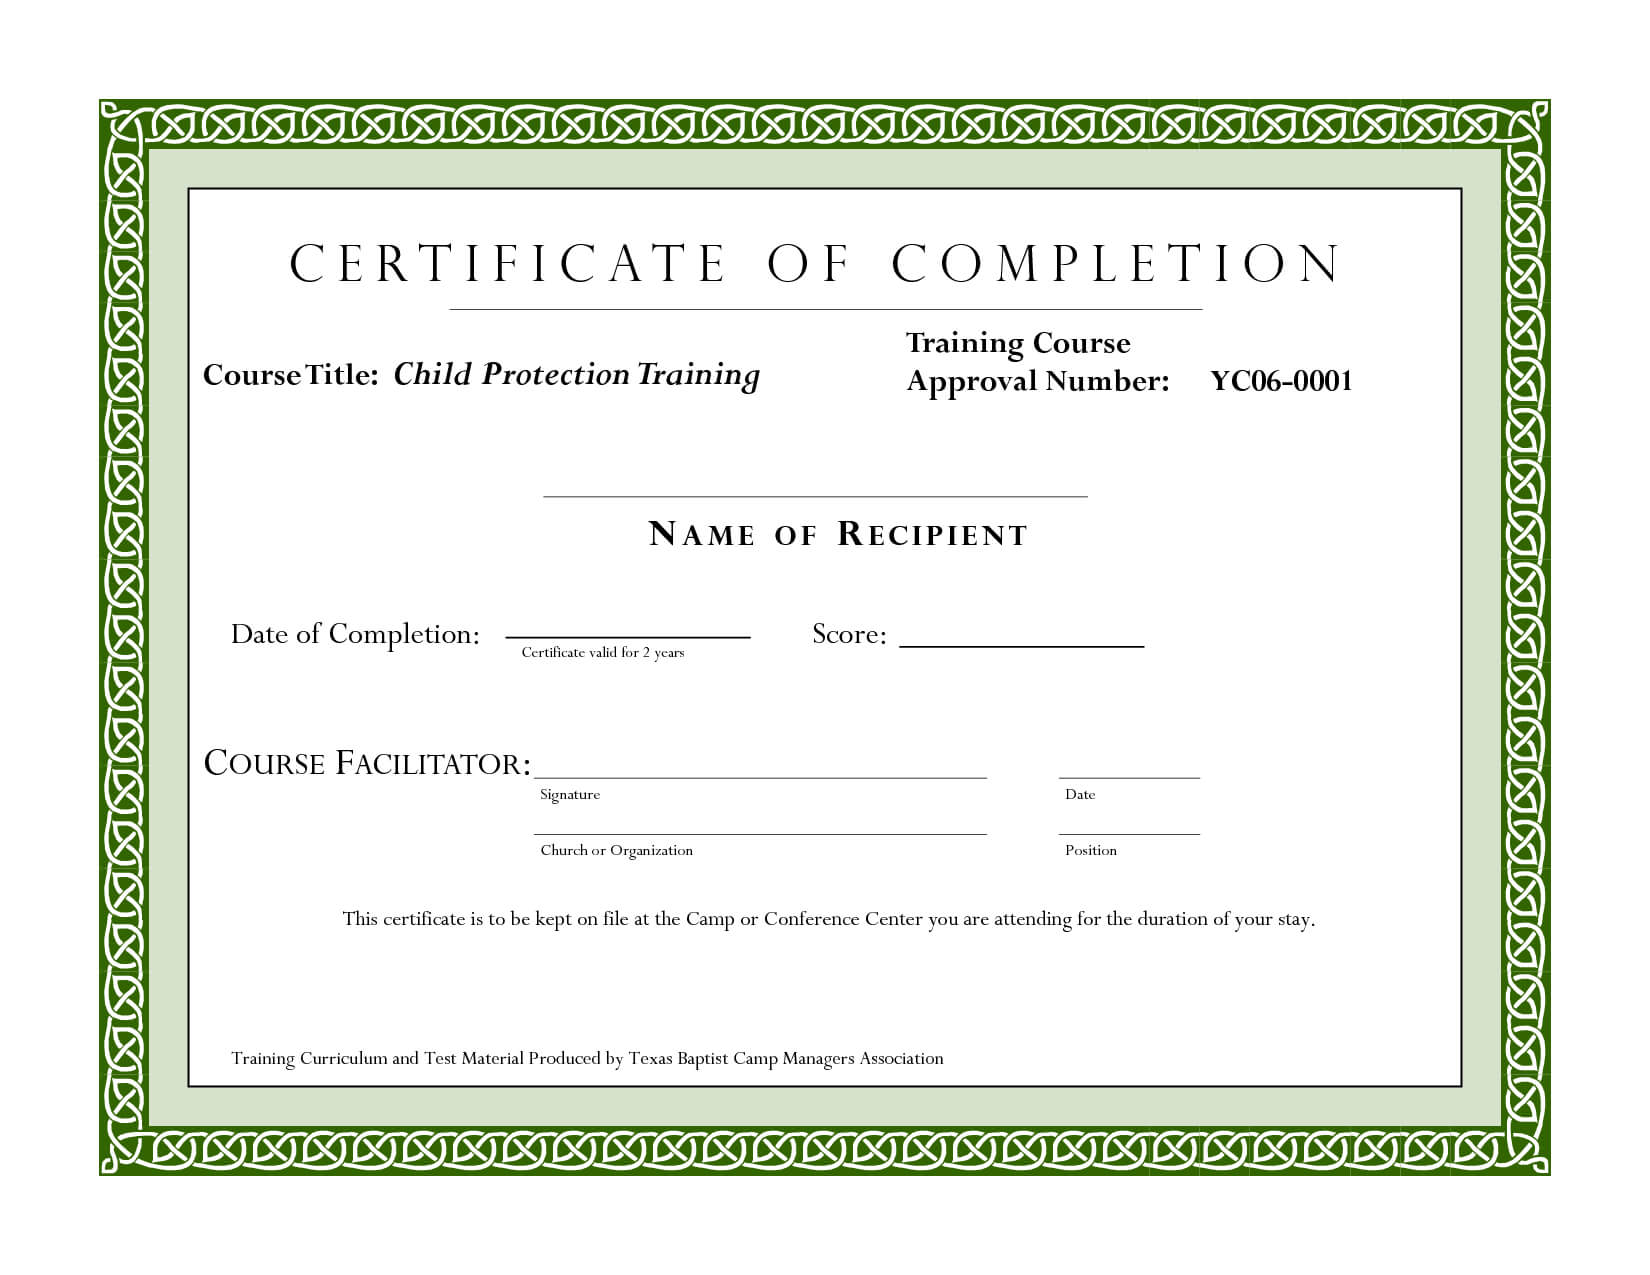 Course Completion Certificate Template   Certificate Of intended for Free Training Completion Certificate Templates